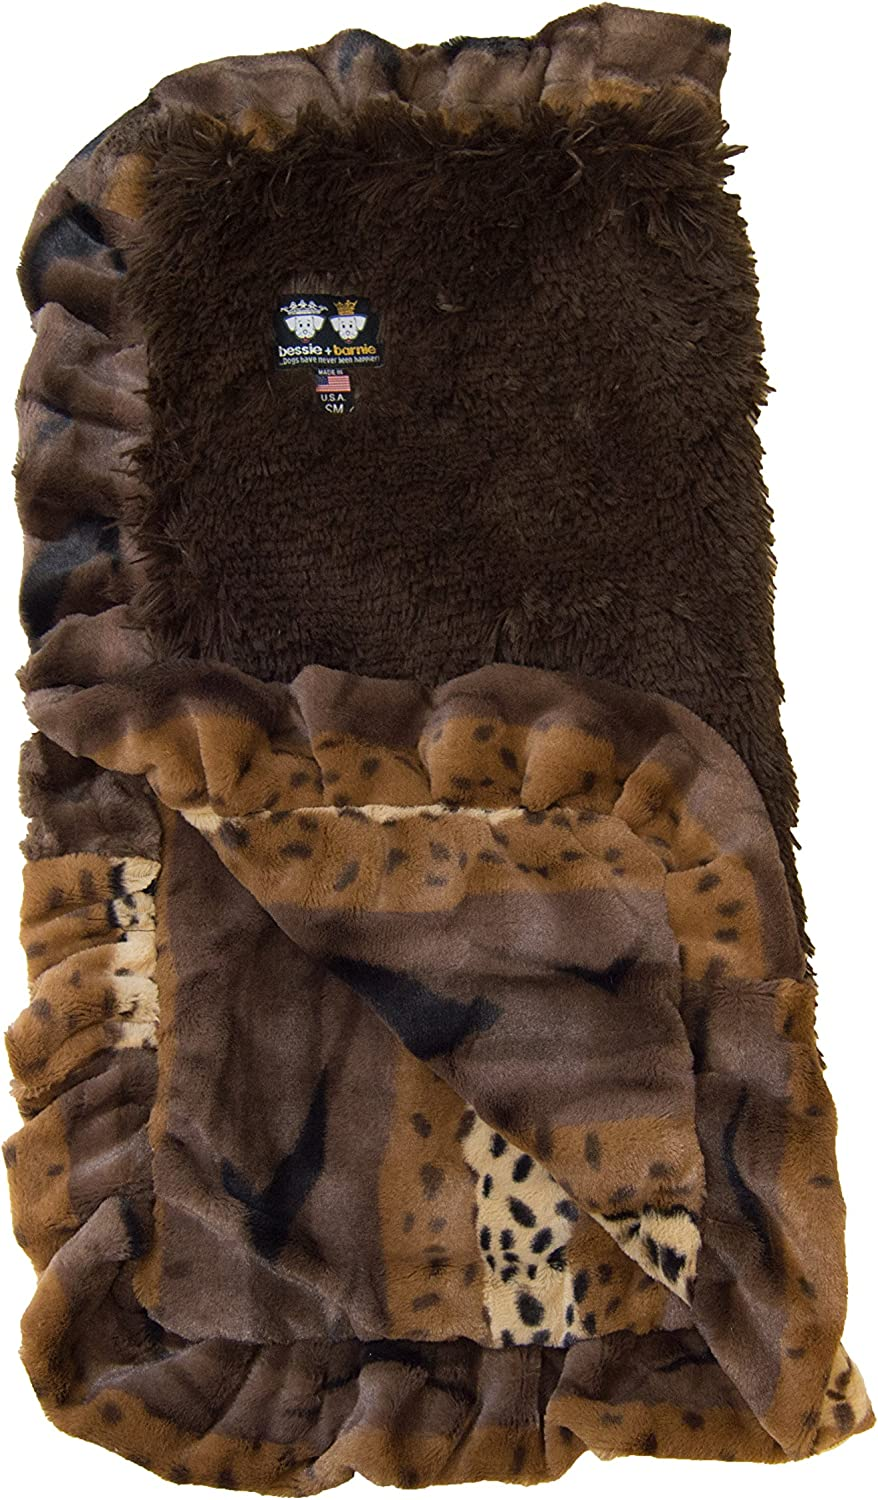 BESSIE AND BARNIE Wild Kingdom Ruffle Grizzly Bear Shag Ultra Plush Faux Fur Pet, Dog, Cat, Puppy Super Soft Reversible Blanket (Multiple Sizes)